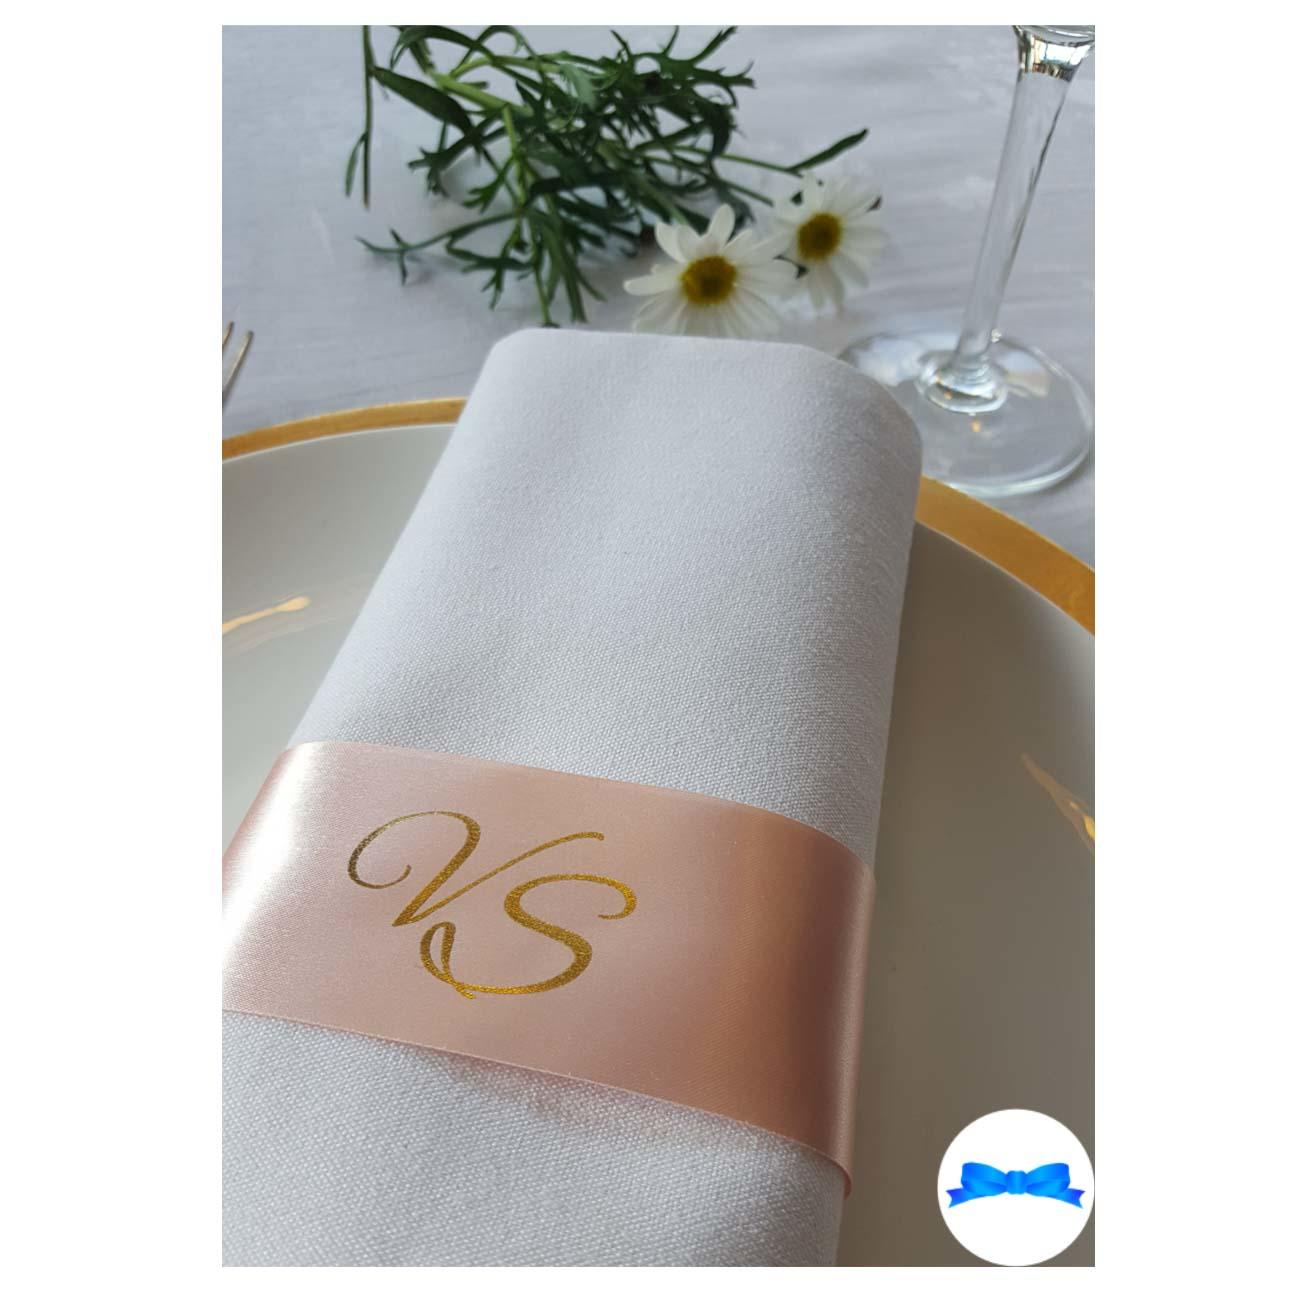 Peach Monogrammed Napkin ring ribbons